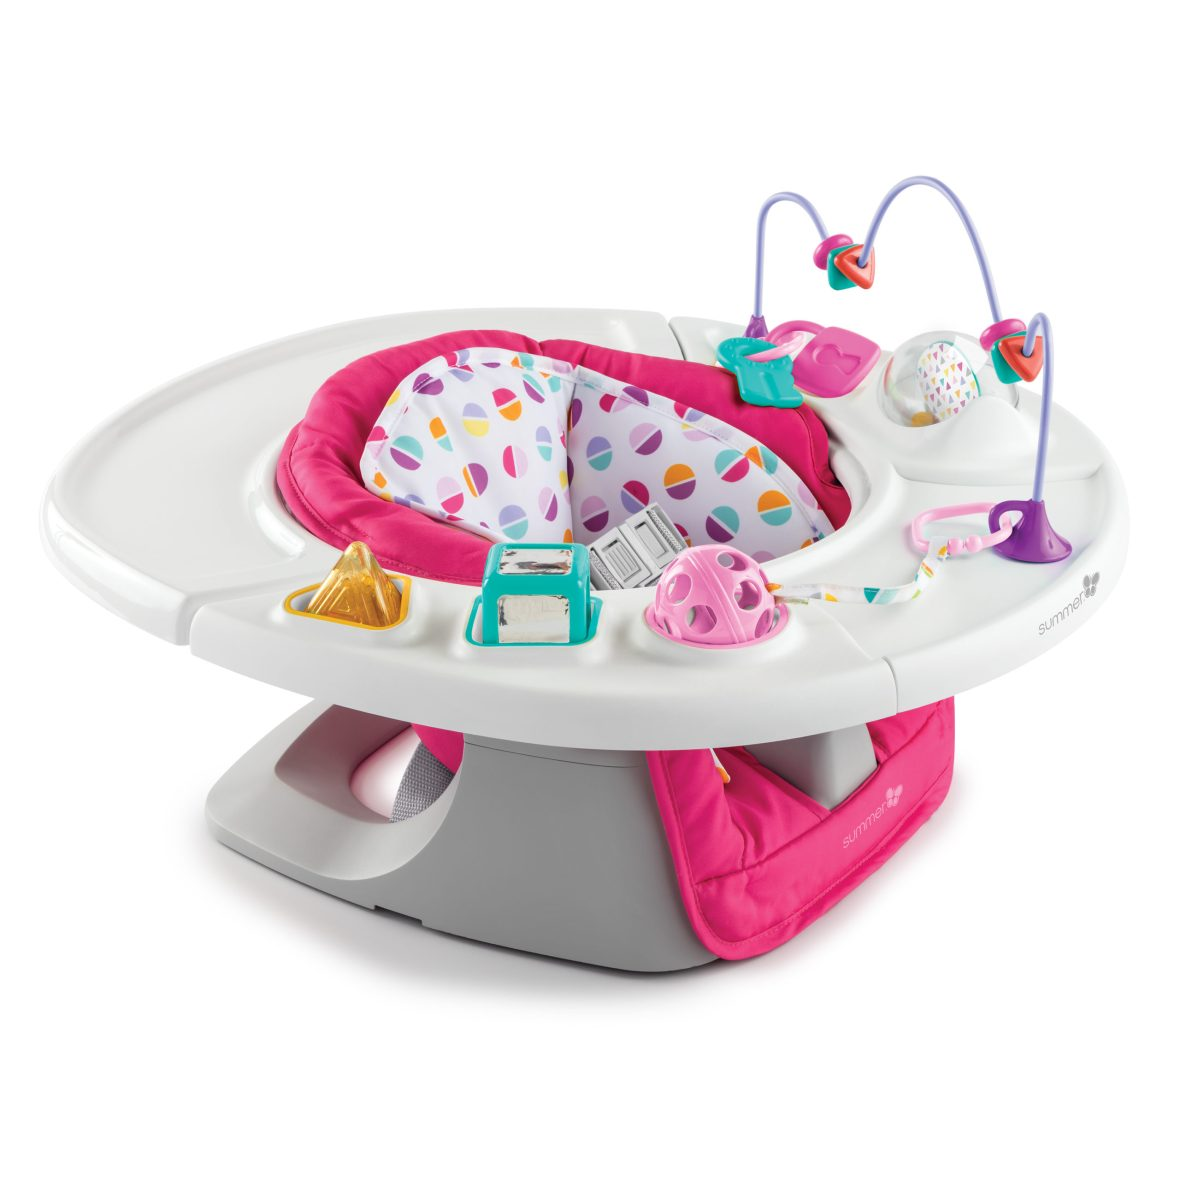 Summer Infant 4-in-1 Deluxe SuperSeat – Pink